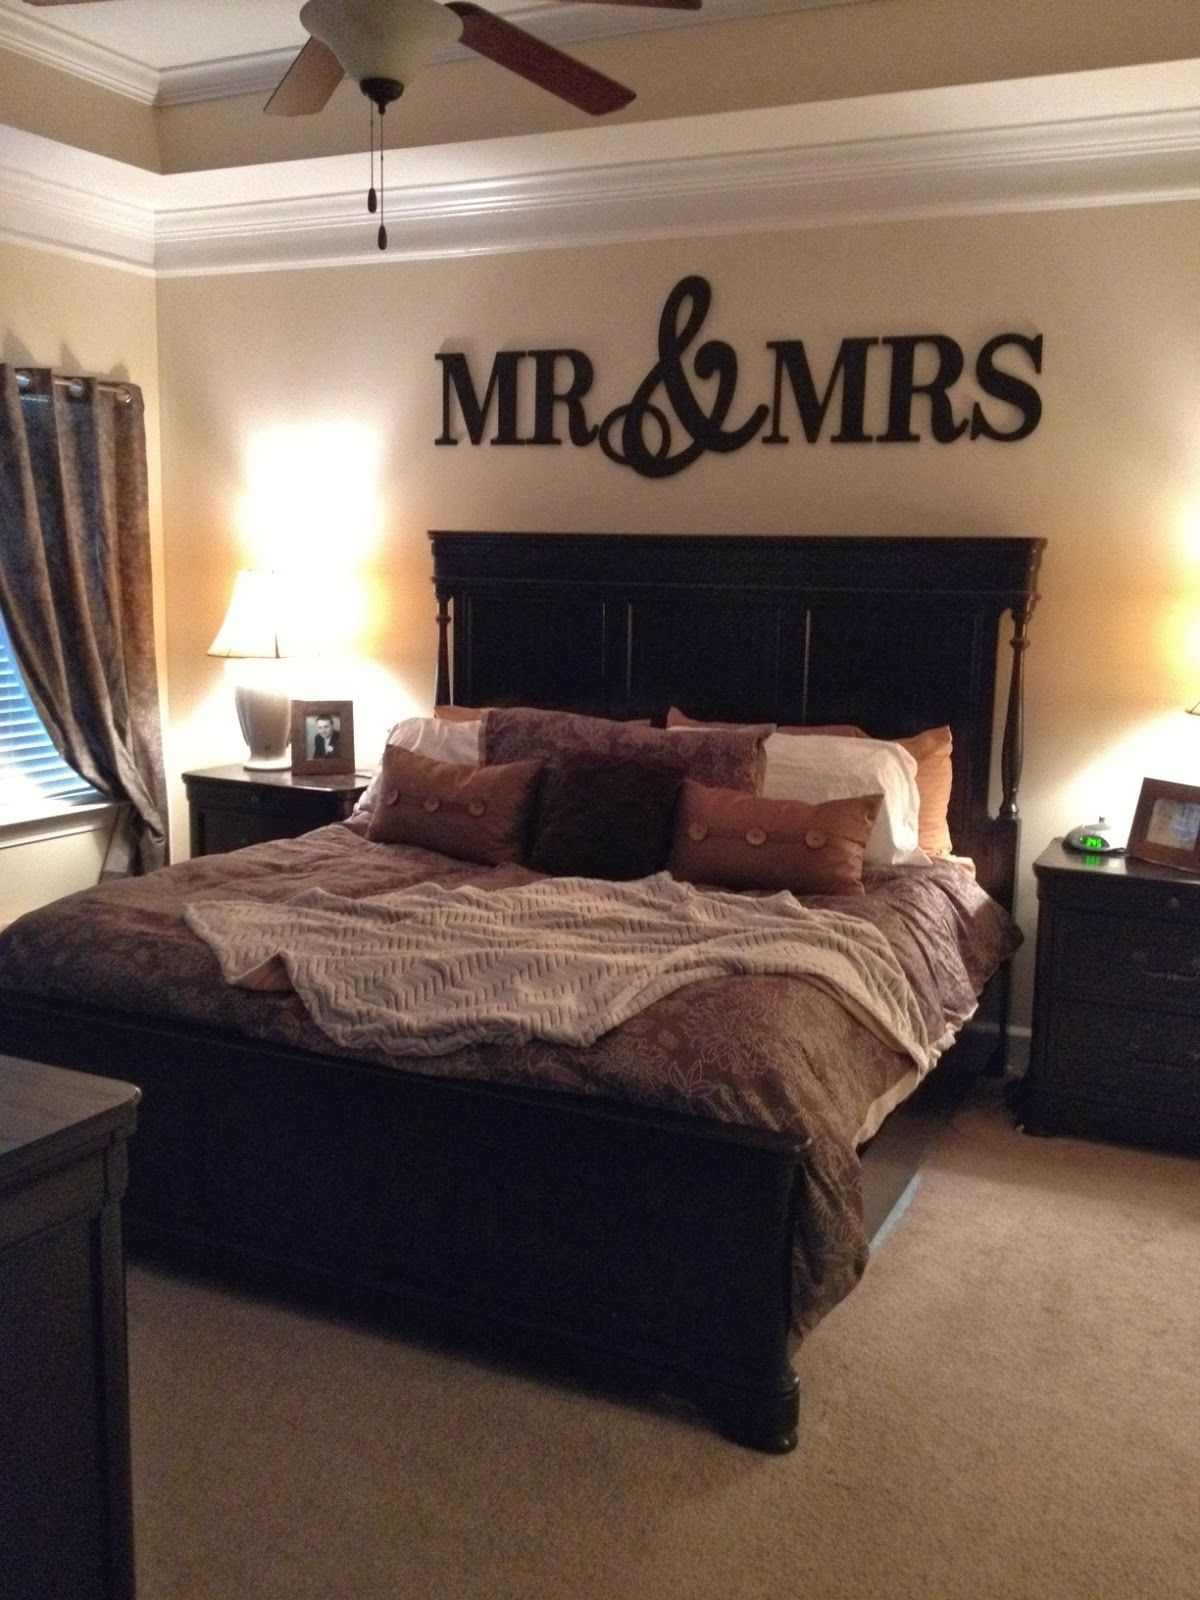 Couples Bedroom Ideas Cute Bedroom Ideas For Couples Bedroom Ideas Brown Bedroom Decor Bedroom Decor For Couples Home Decor Bedroom